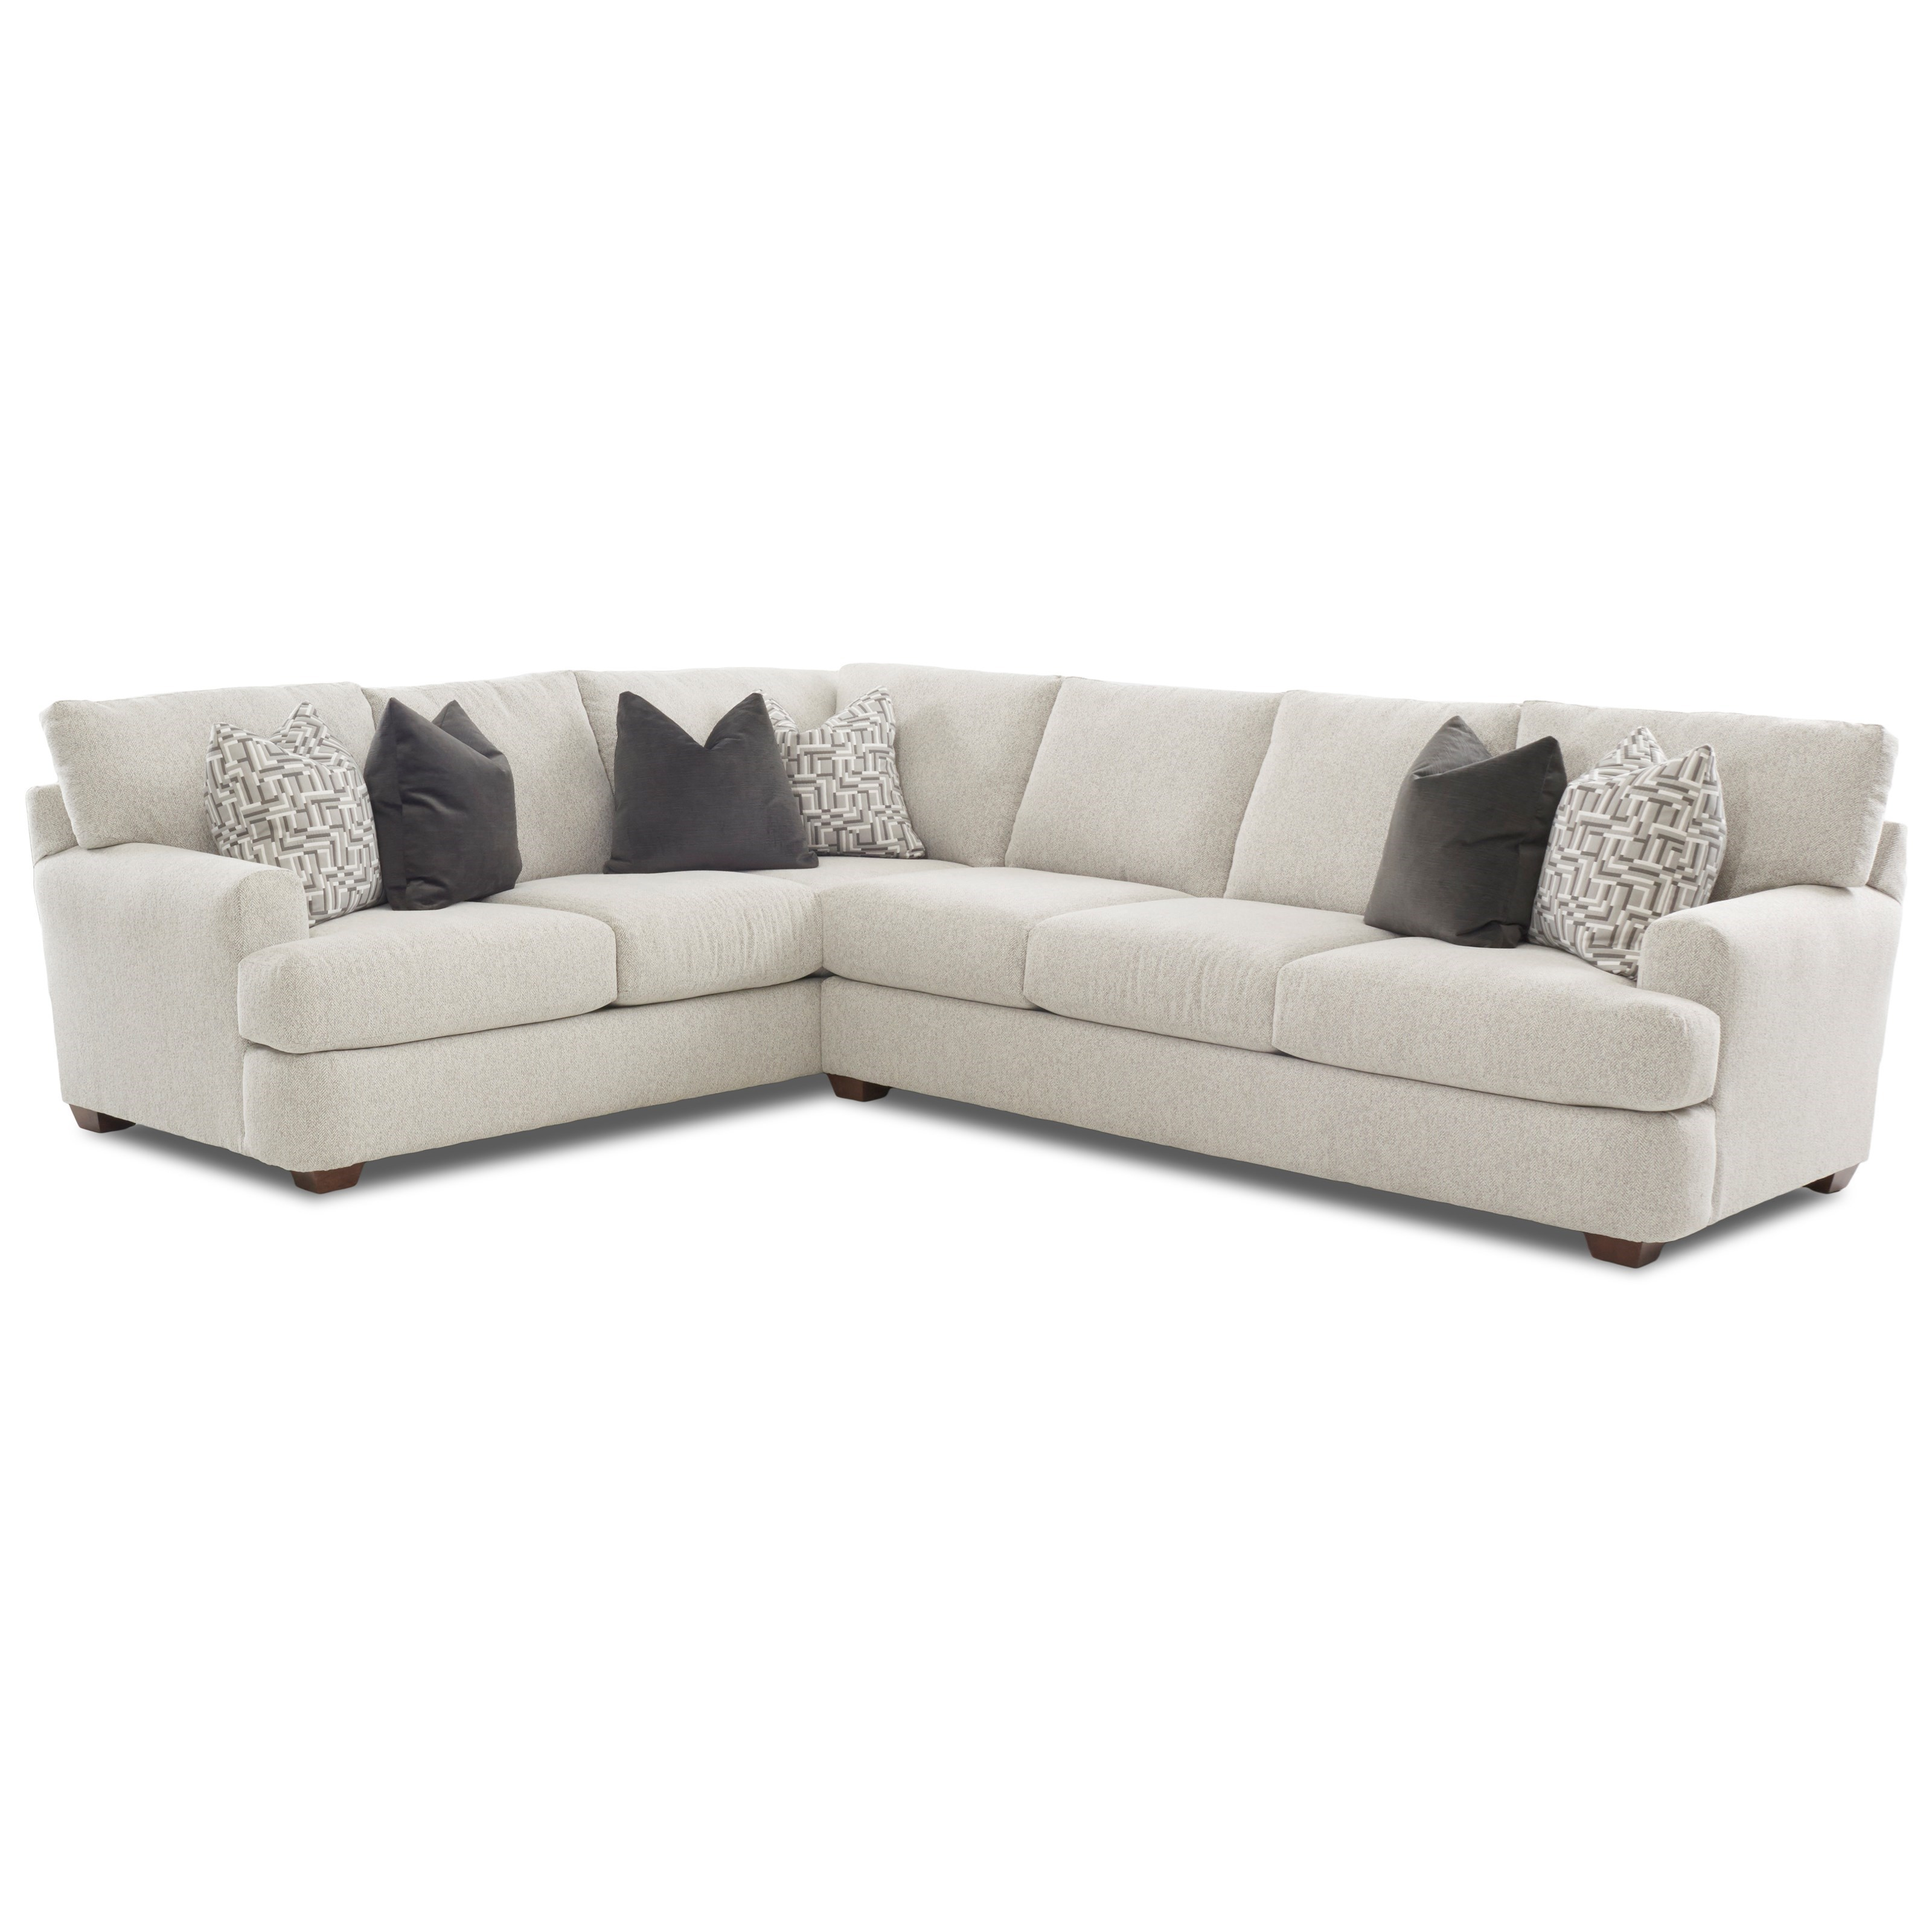 Haynes 2 Pc Sectional Sofa w/ LAF Corner Sofa by Klaussner at Pilgrim Furniture City